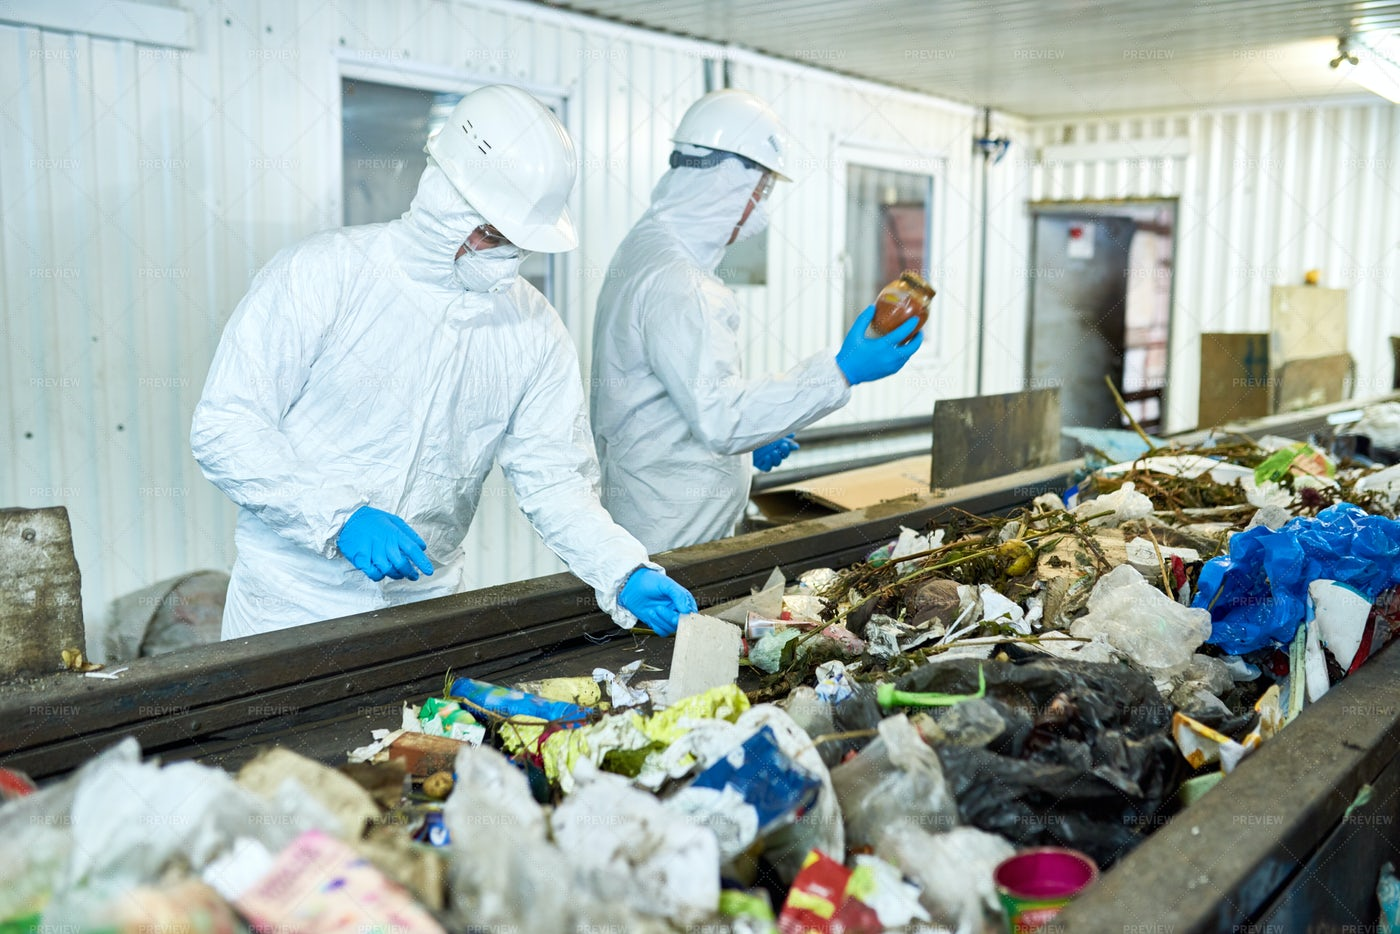 Sorting On Waste Recycling Plant: Stock Photos